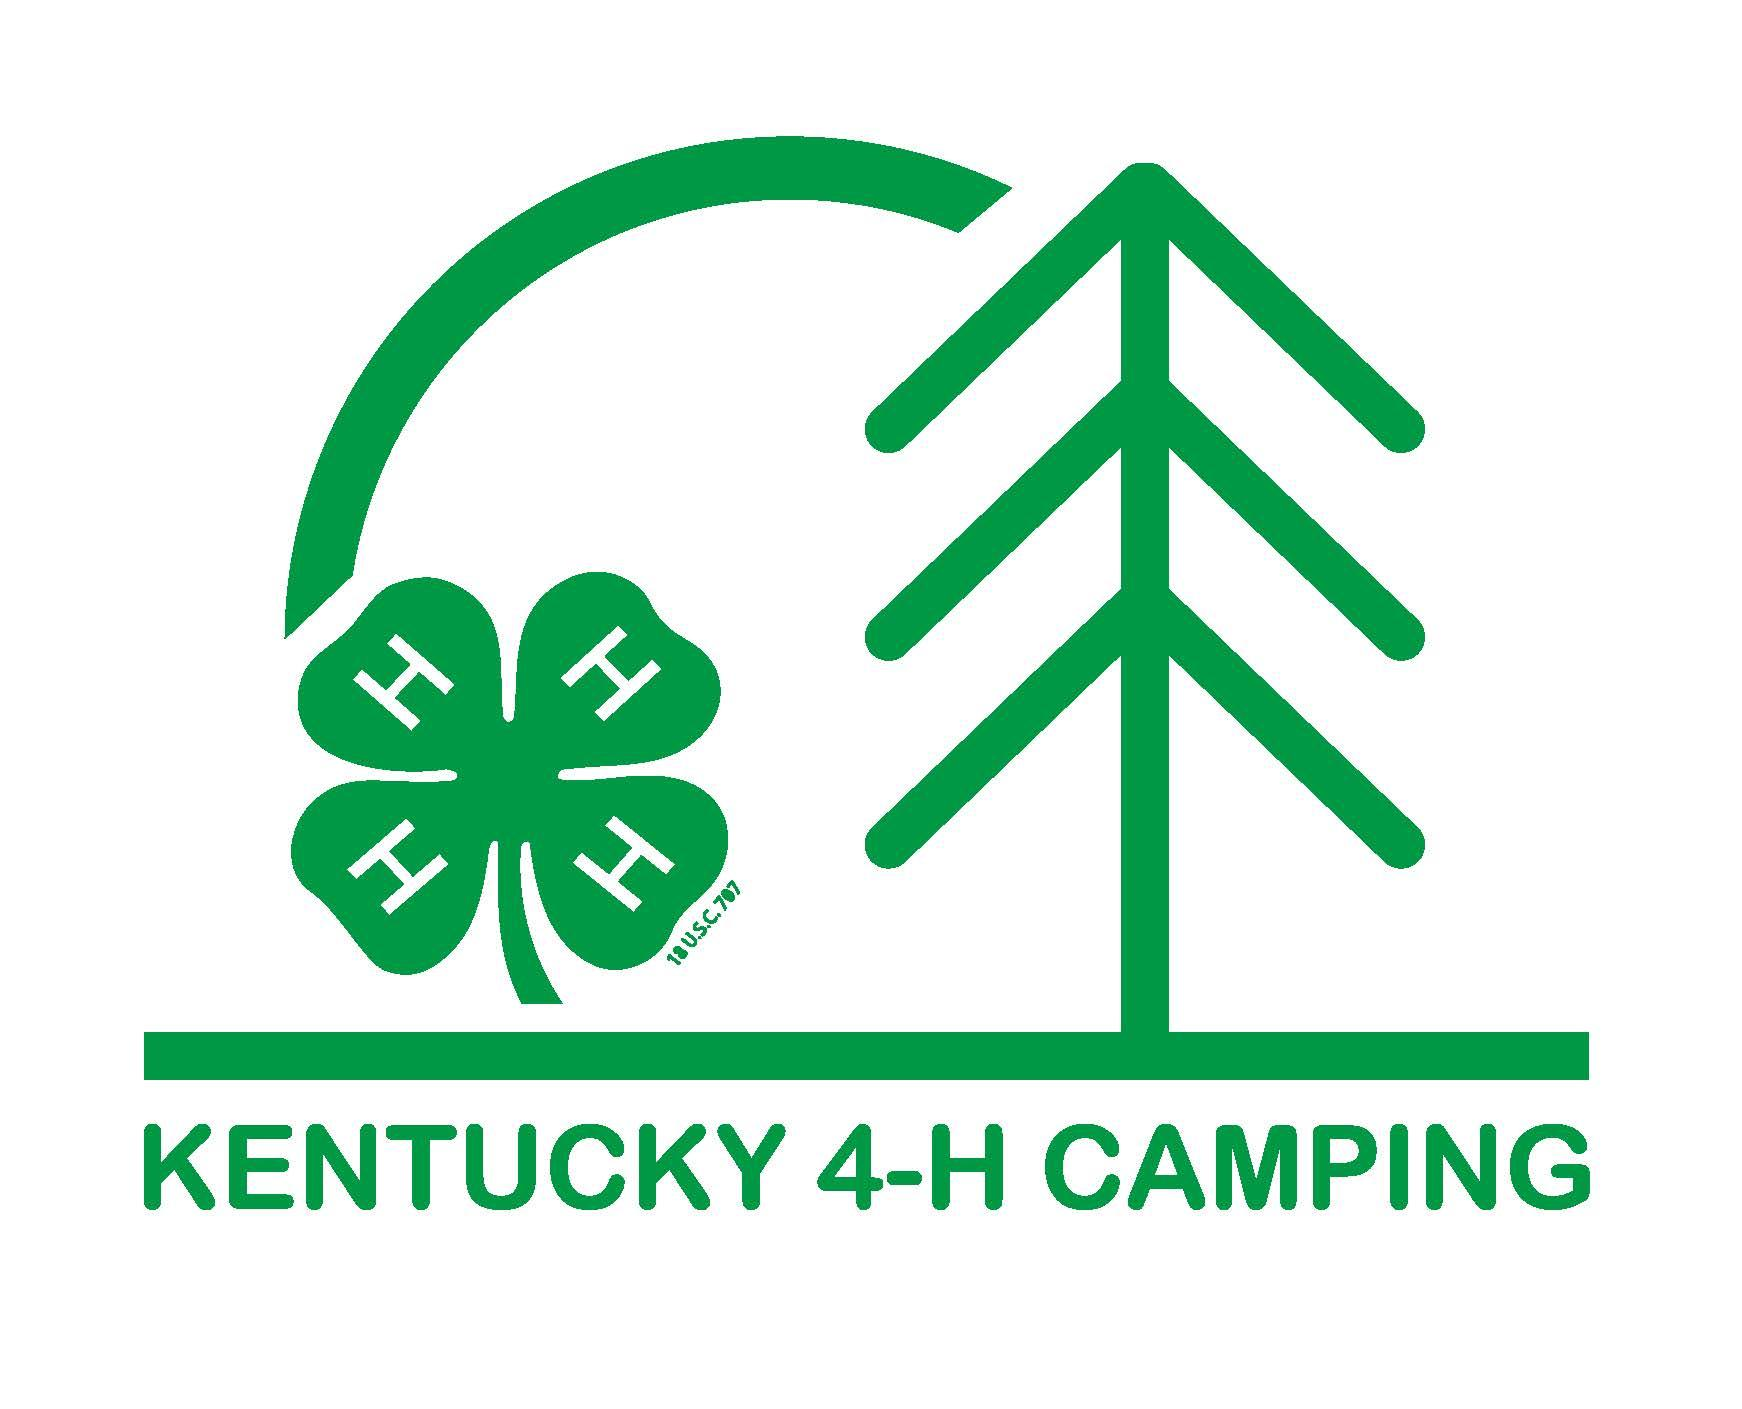 Kentucky 4-H Camp Logo